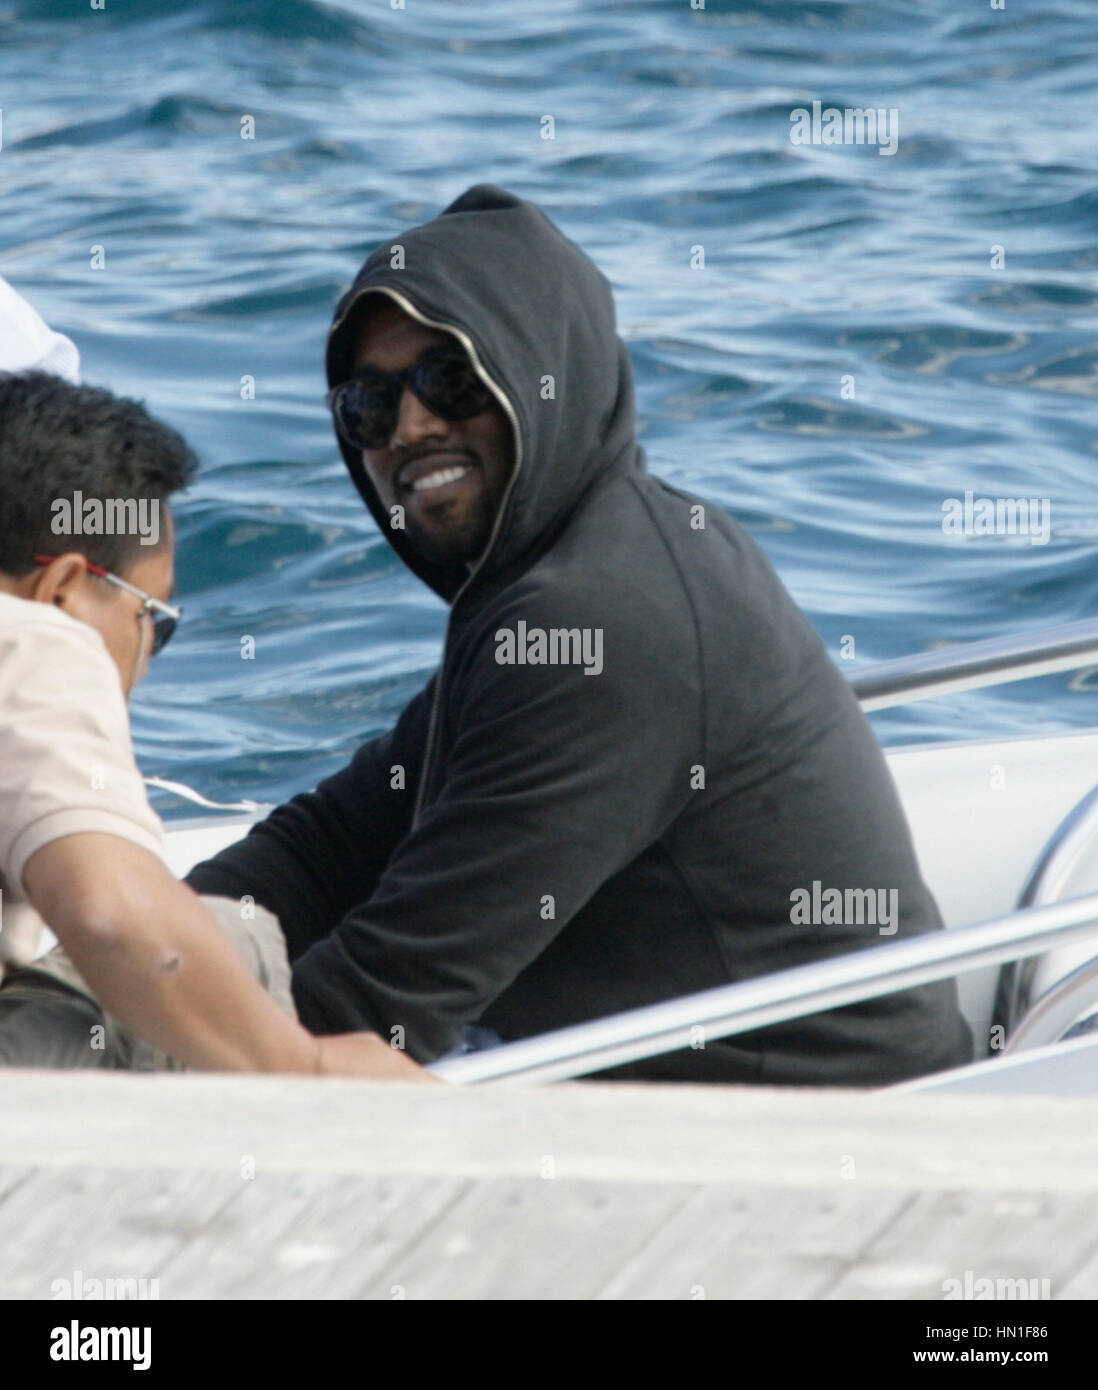 Kanye West at the Hotel Du Cap dock on Antibes, France on May 17, 2011. Photo by Francis Specker - Stock Image